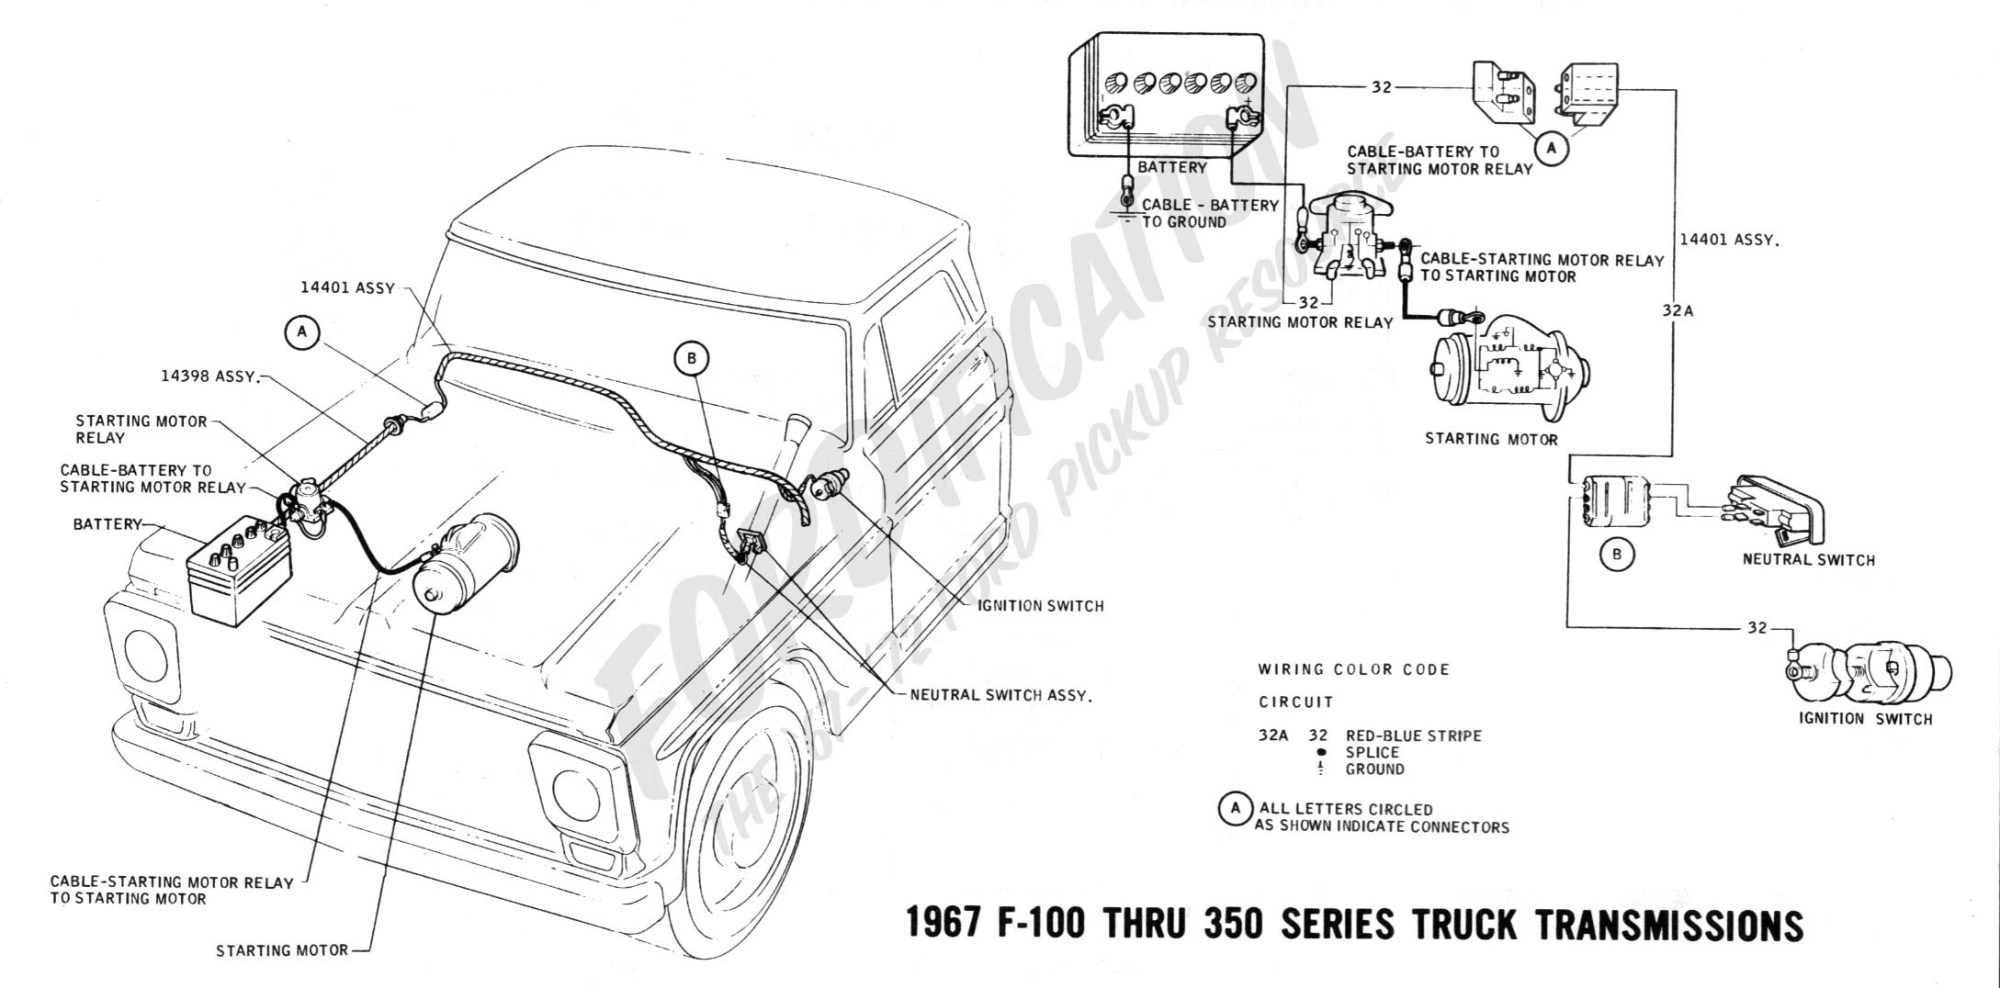 hight resolution of ford 460 engine diagram ford truck technical drawings and schematics section h wiring of ford 460